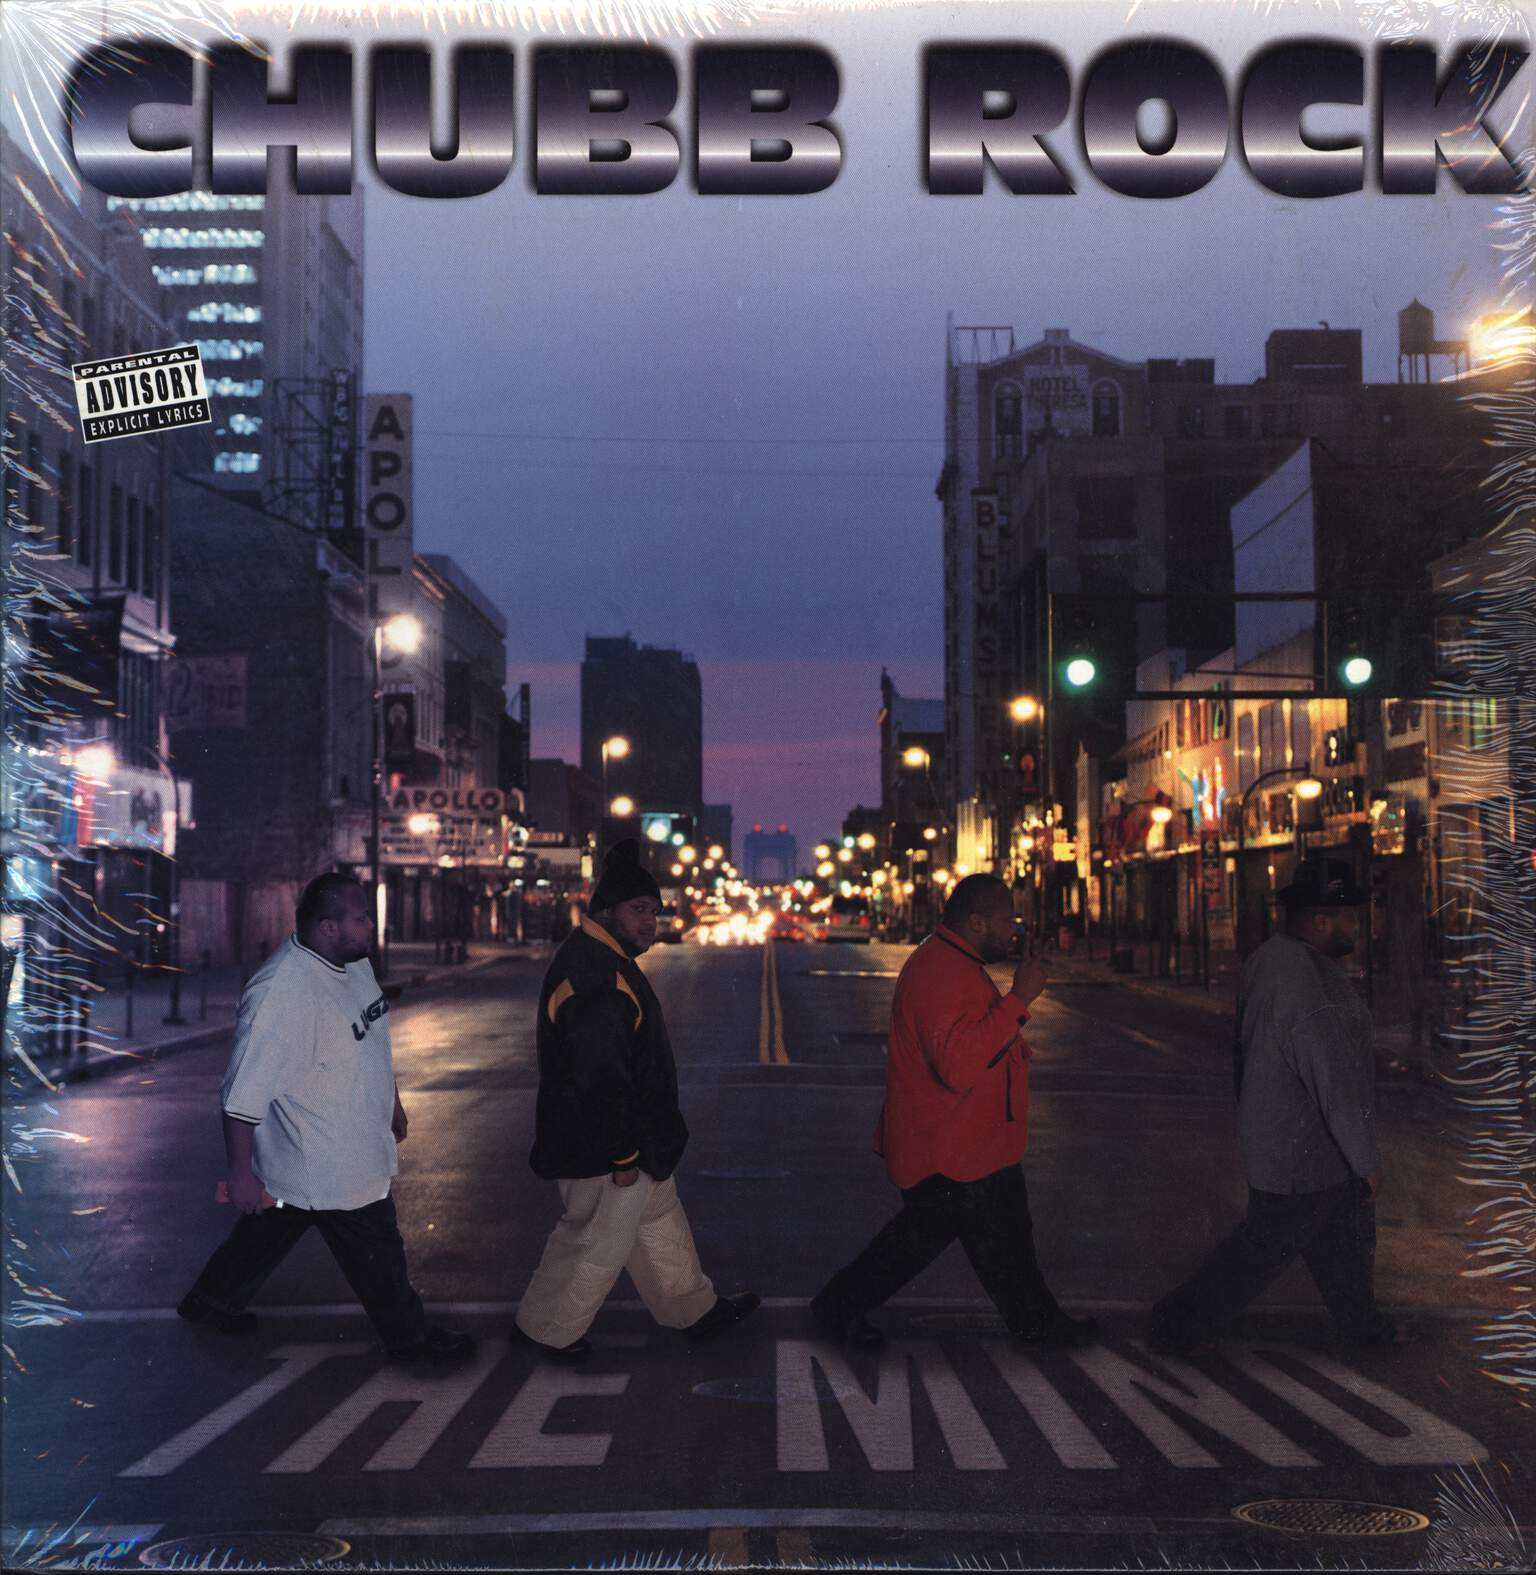 Chubb Rock: The Mind, LP (Vinyl)